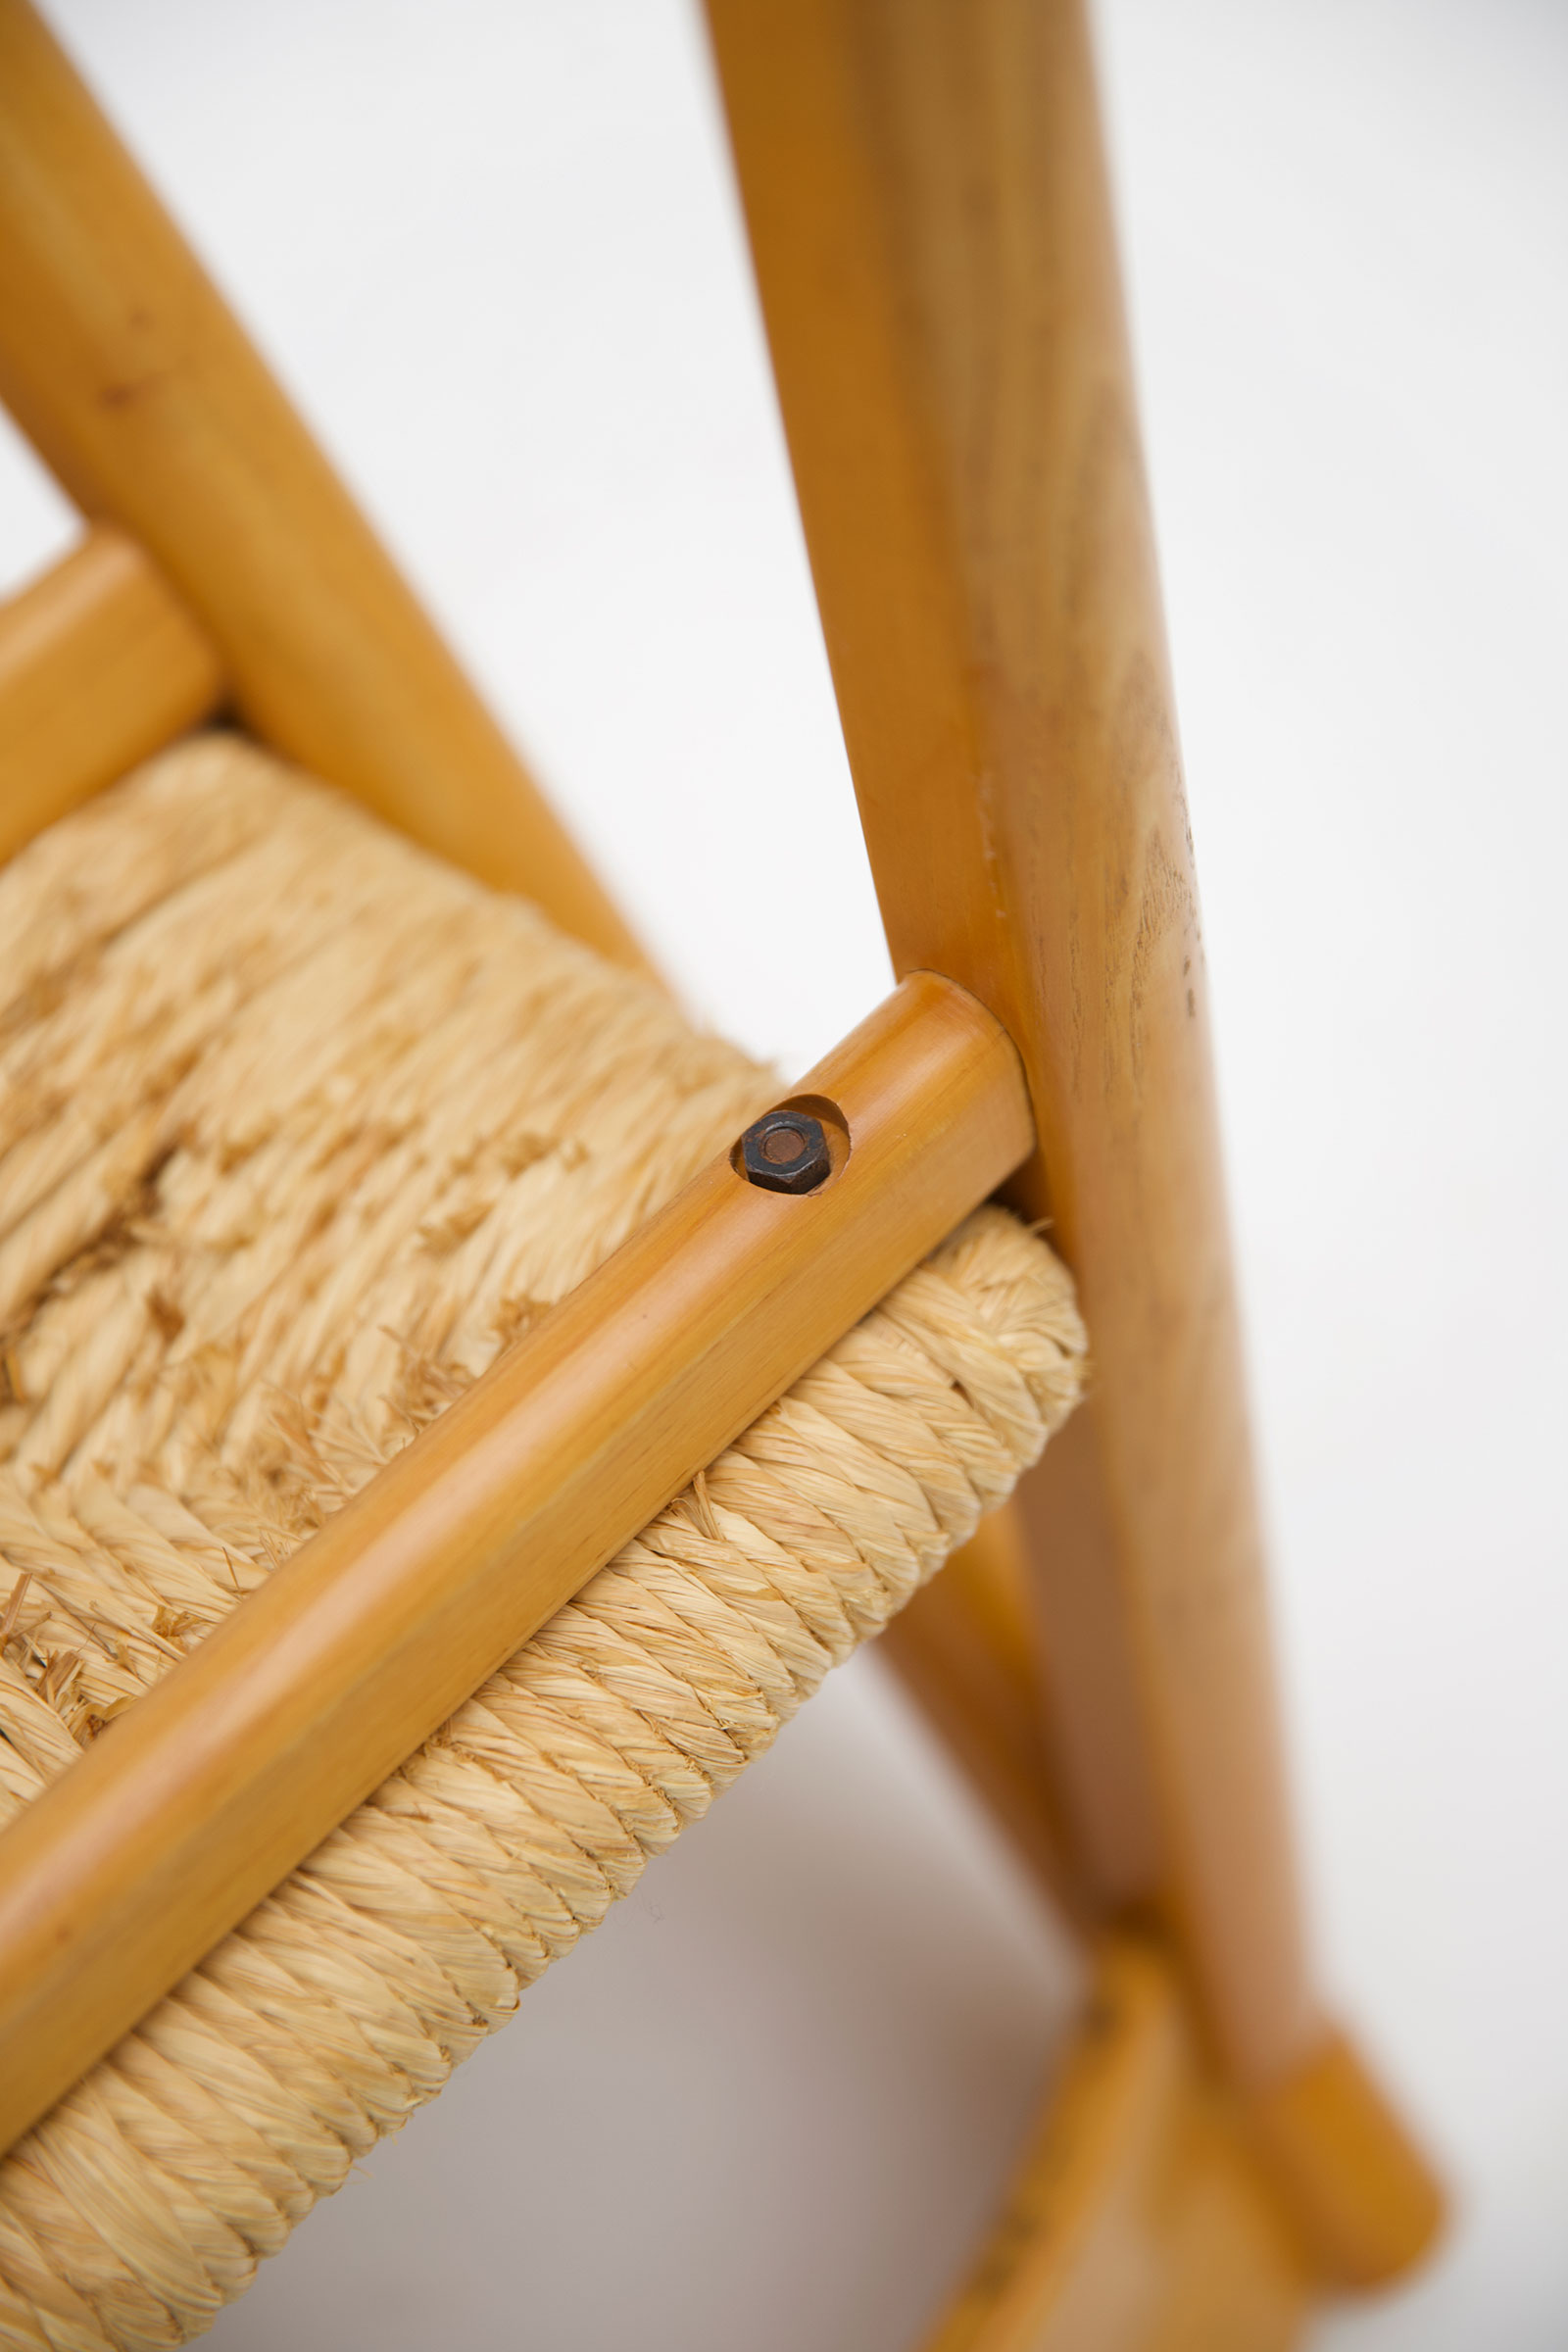 1960s Woven Cane Chairsimage 8